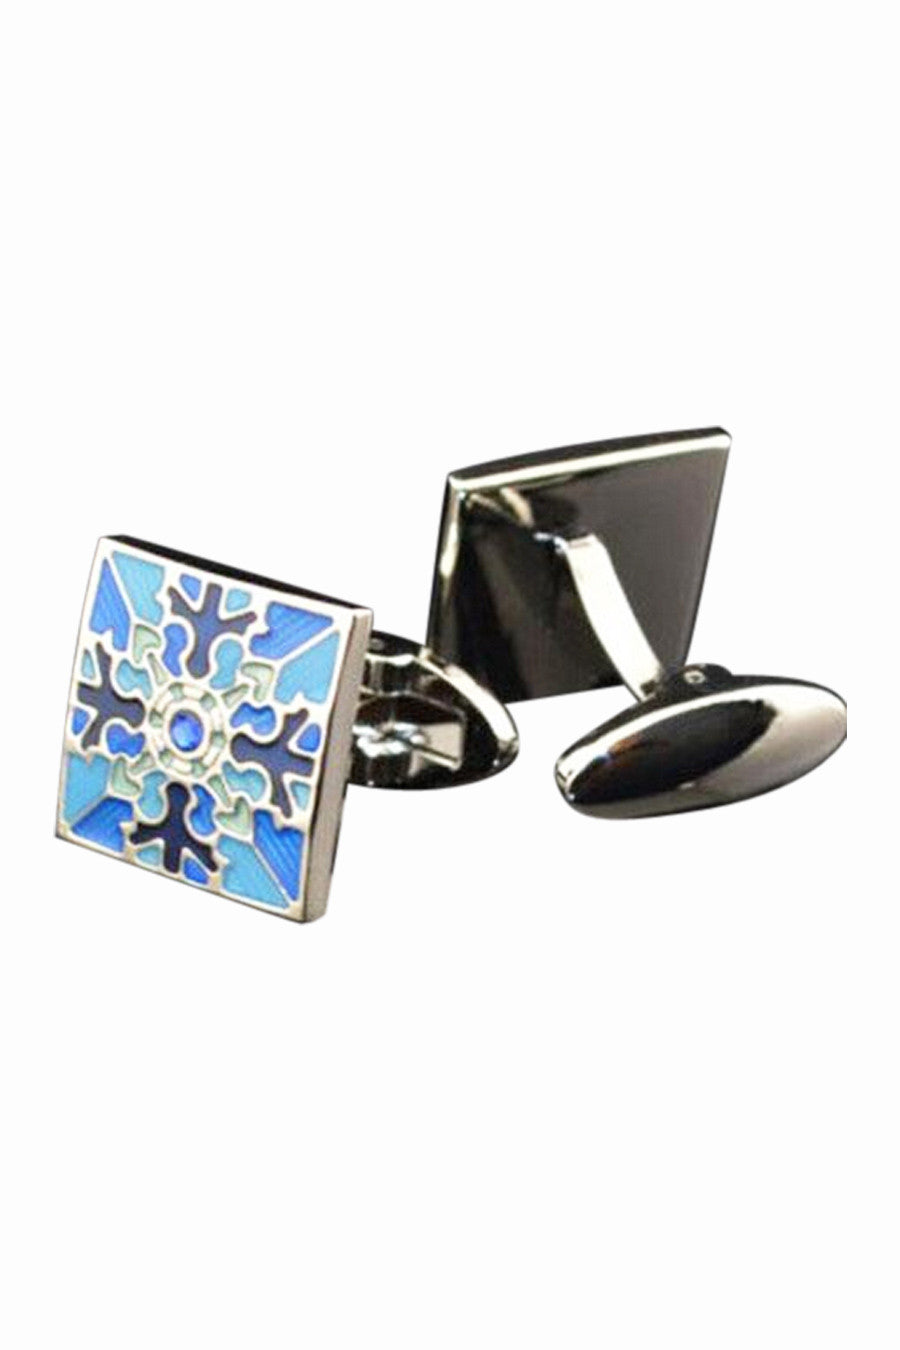 Retro Blue Enamel Men's Cufflinks